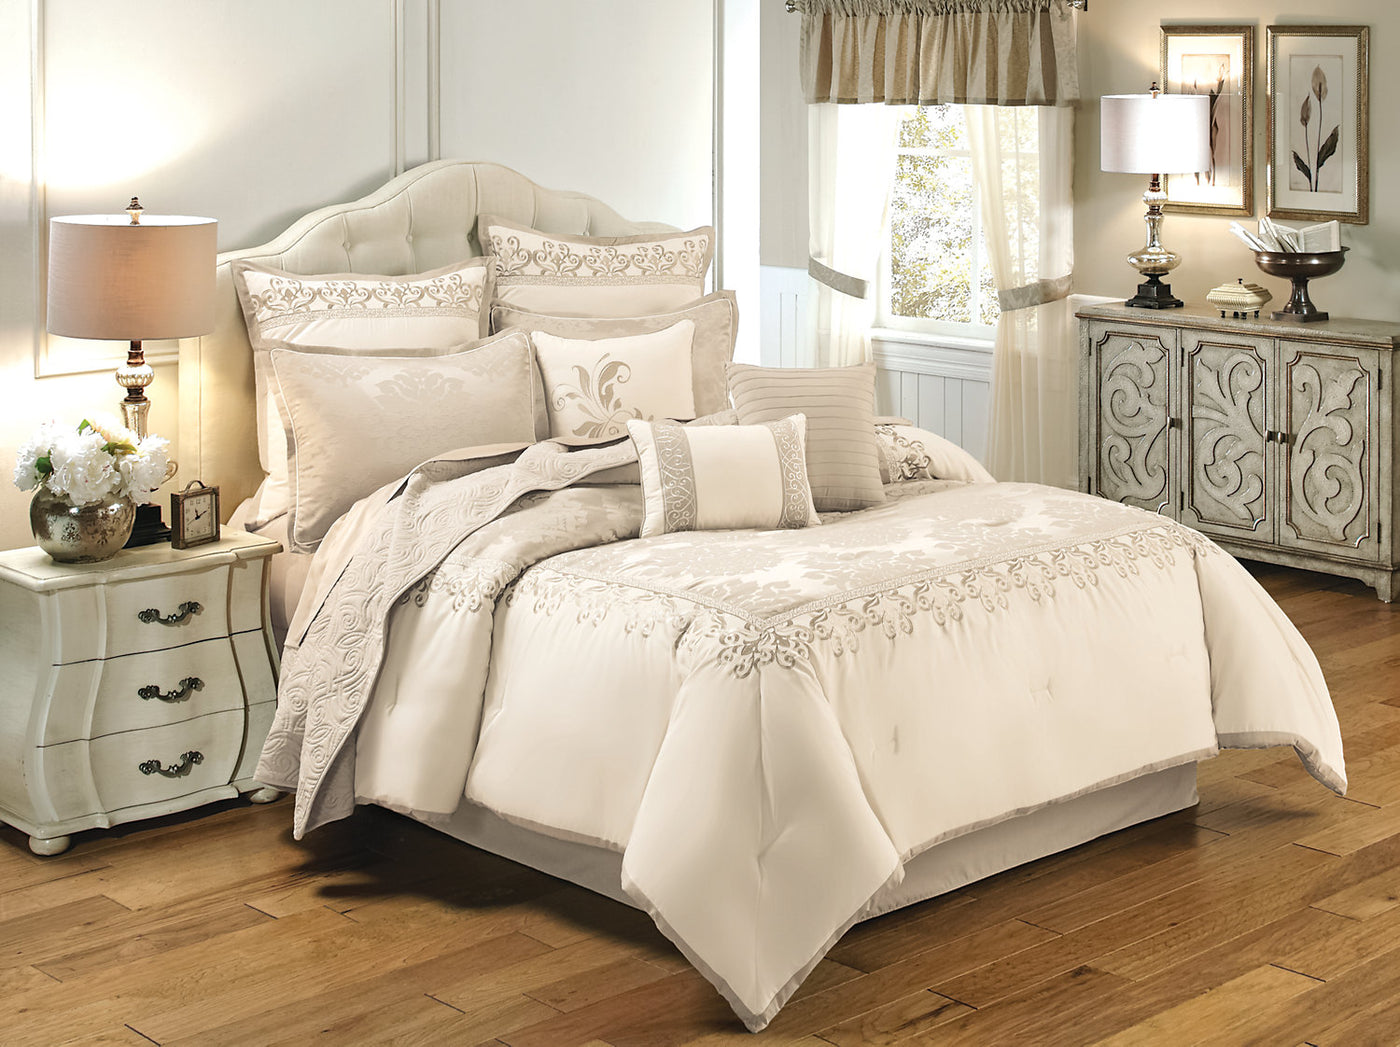 New Haven 10 Piece King Comforter Set The Brick